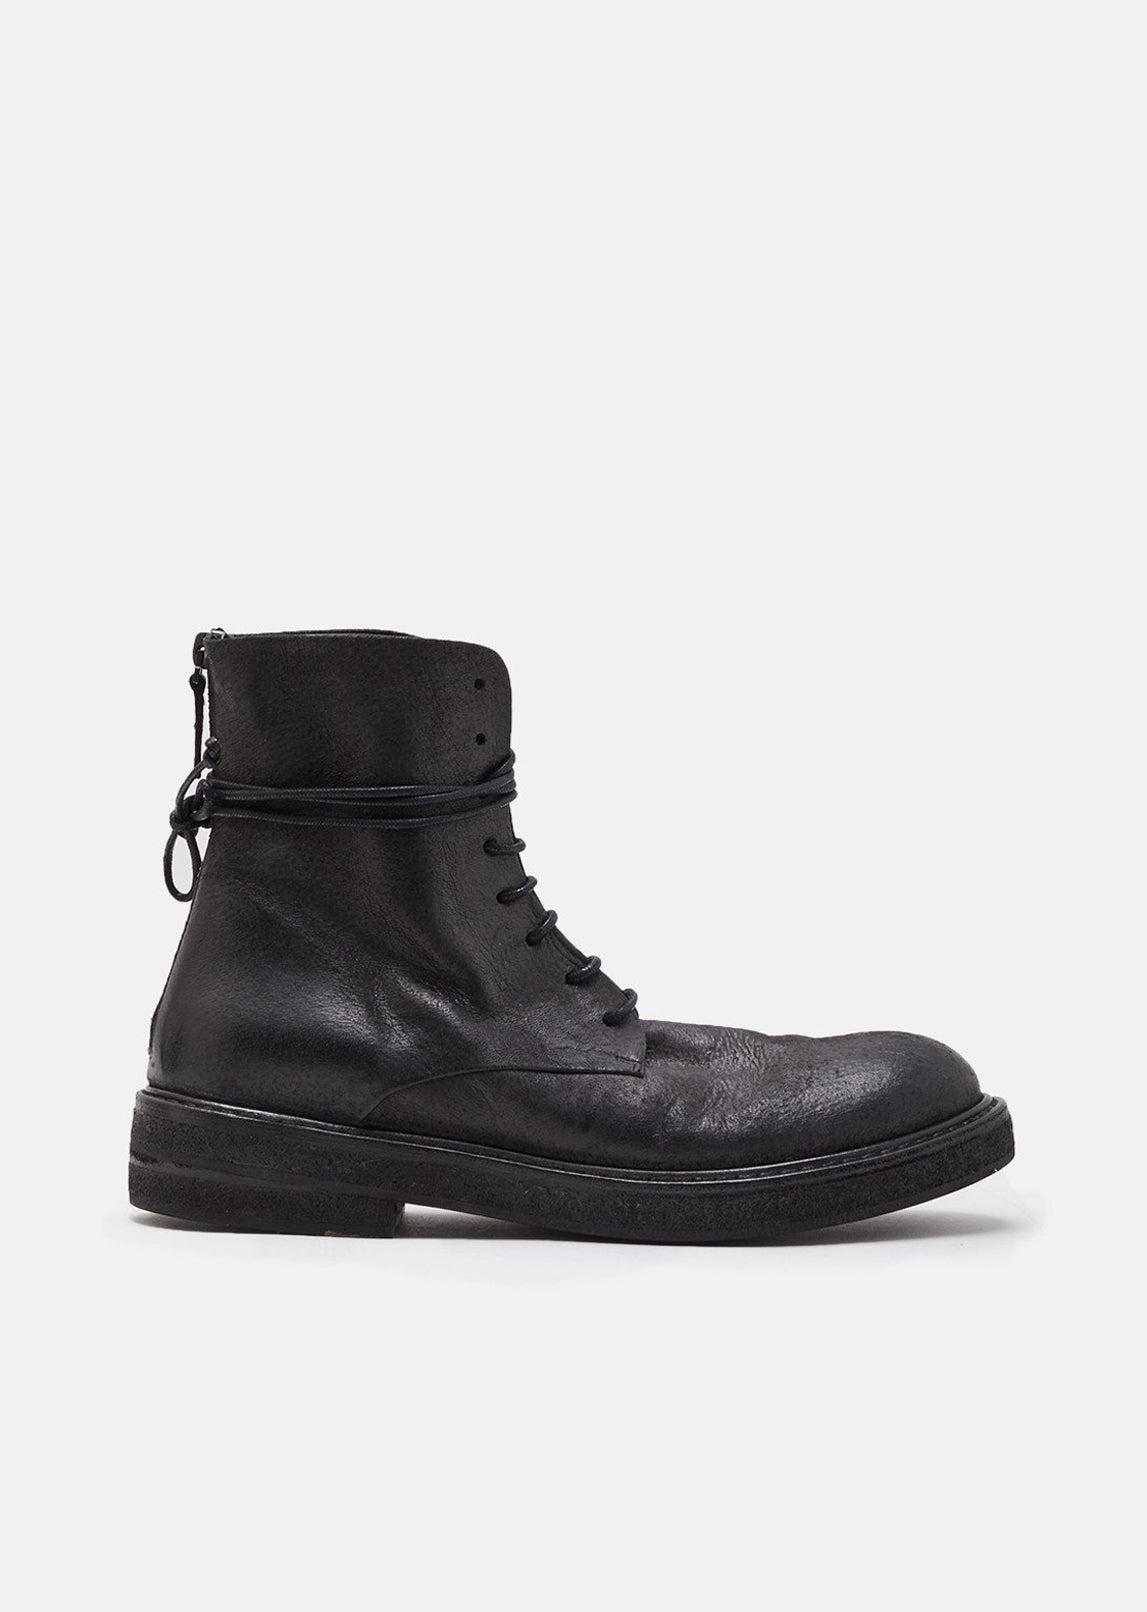 MARSèLL Parrucca Lace-Up Boots